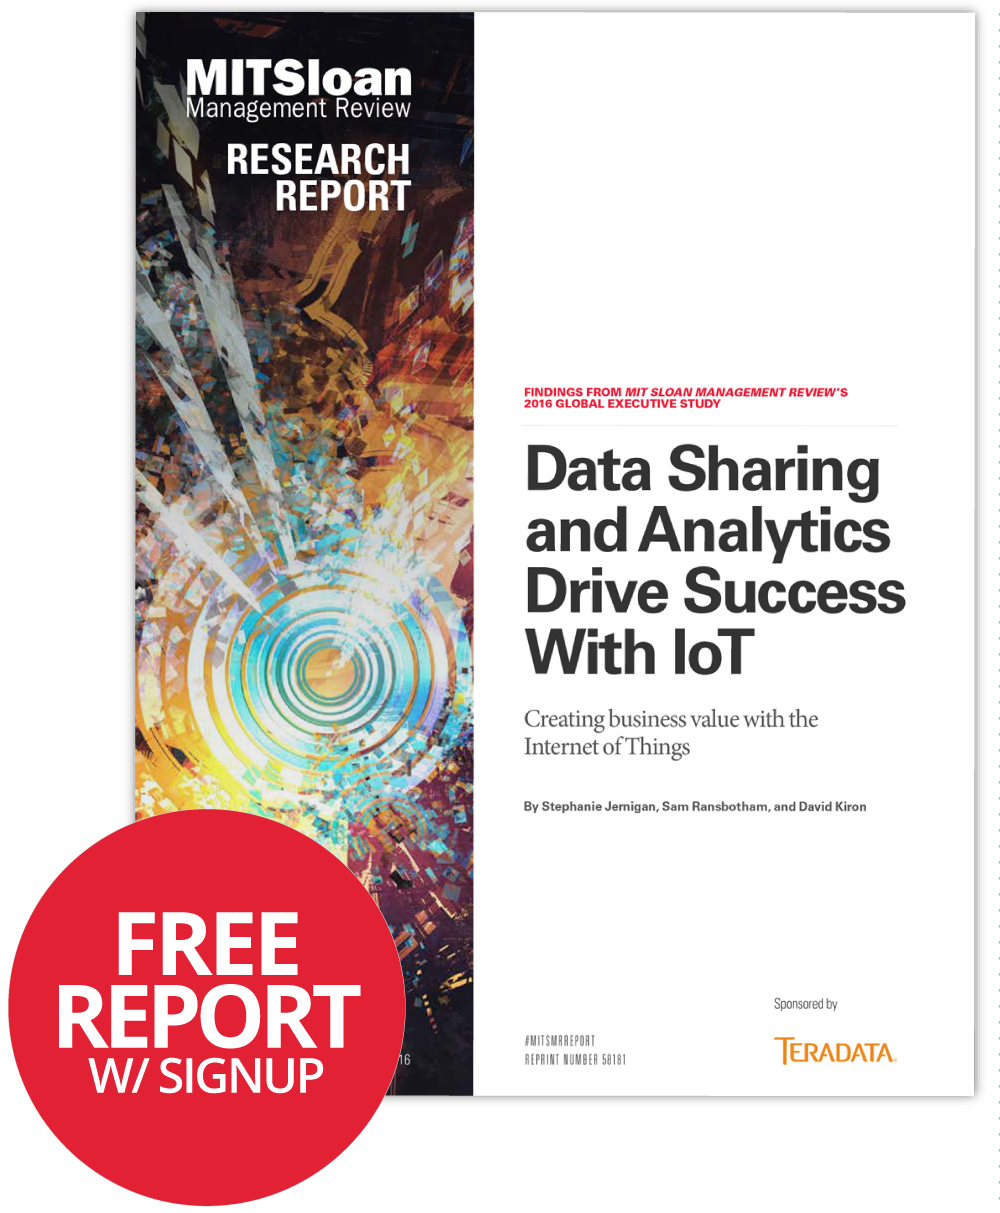 Data Sharing and Analytics Drive Success With IoT